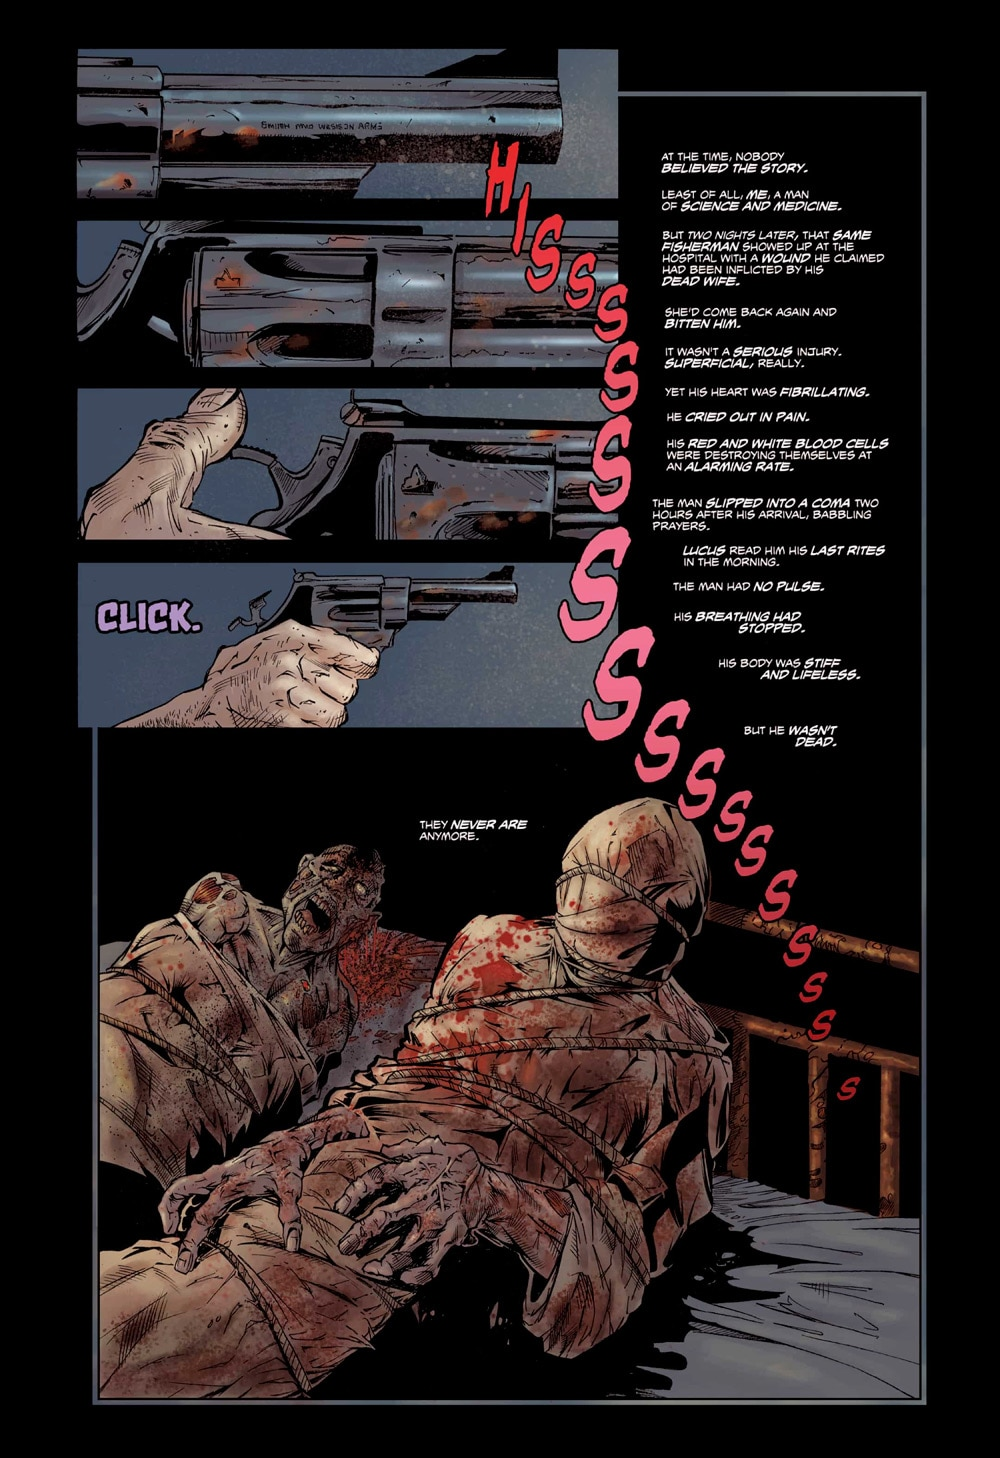 ZOMBIE sample 1 - Eibon Press' Lucio Fulci's Zombie Sells Completely Out in Less Than 24 Hours; Reprint Coming When?